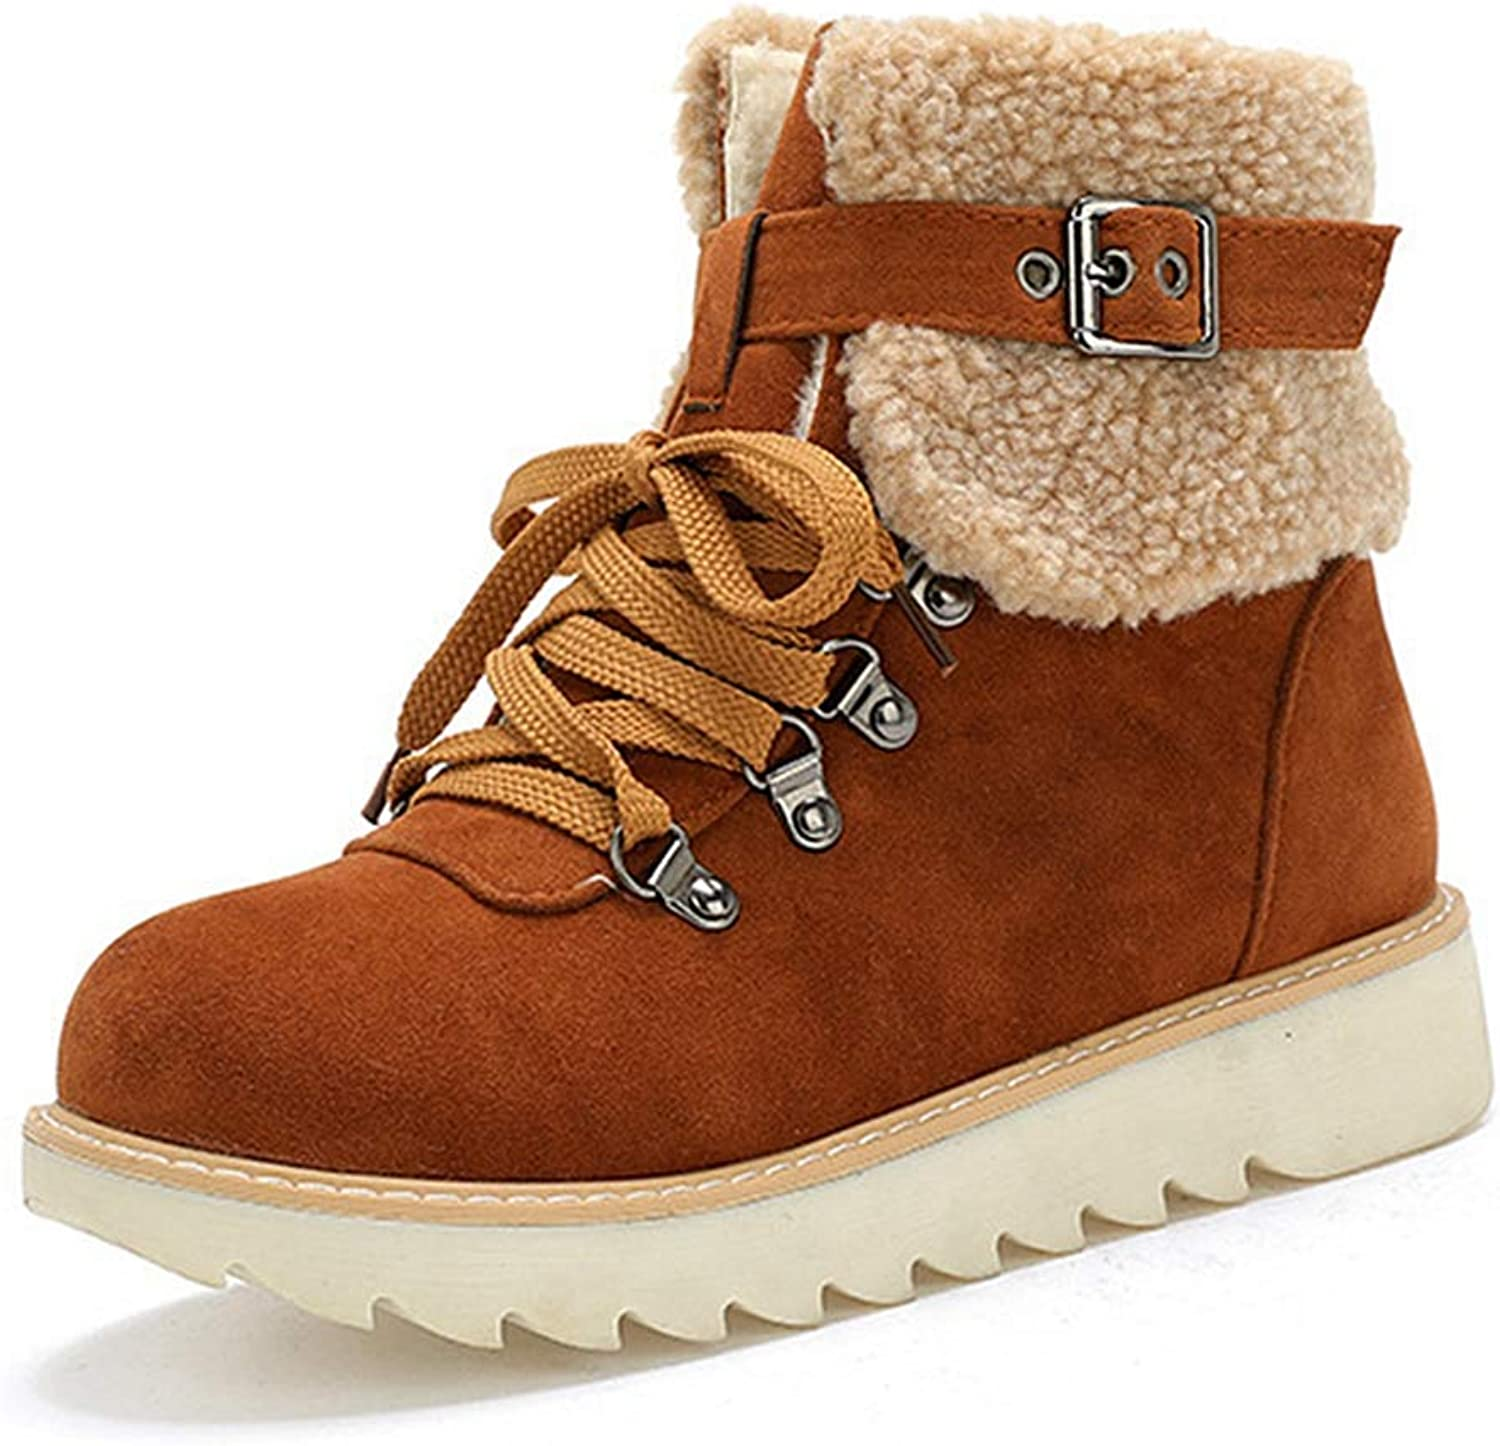 Fashion shoesbox Women's Ankle High Snow Boots Lace-Up Winter Warm Fur Round Toe Short Boots Flat Heel Outdoor Work Combat Bootie